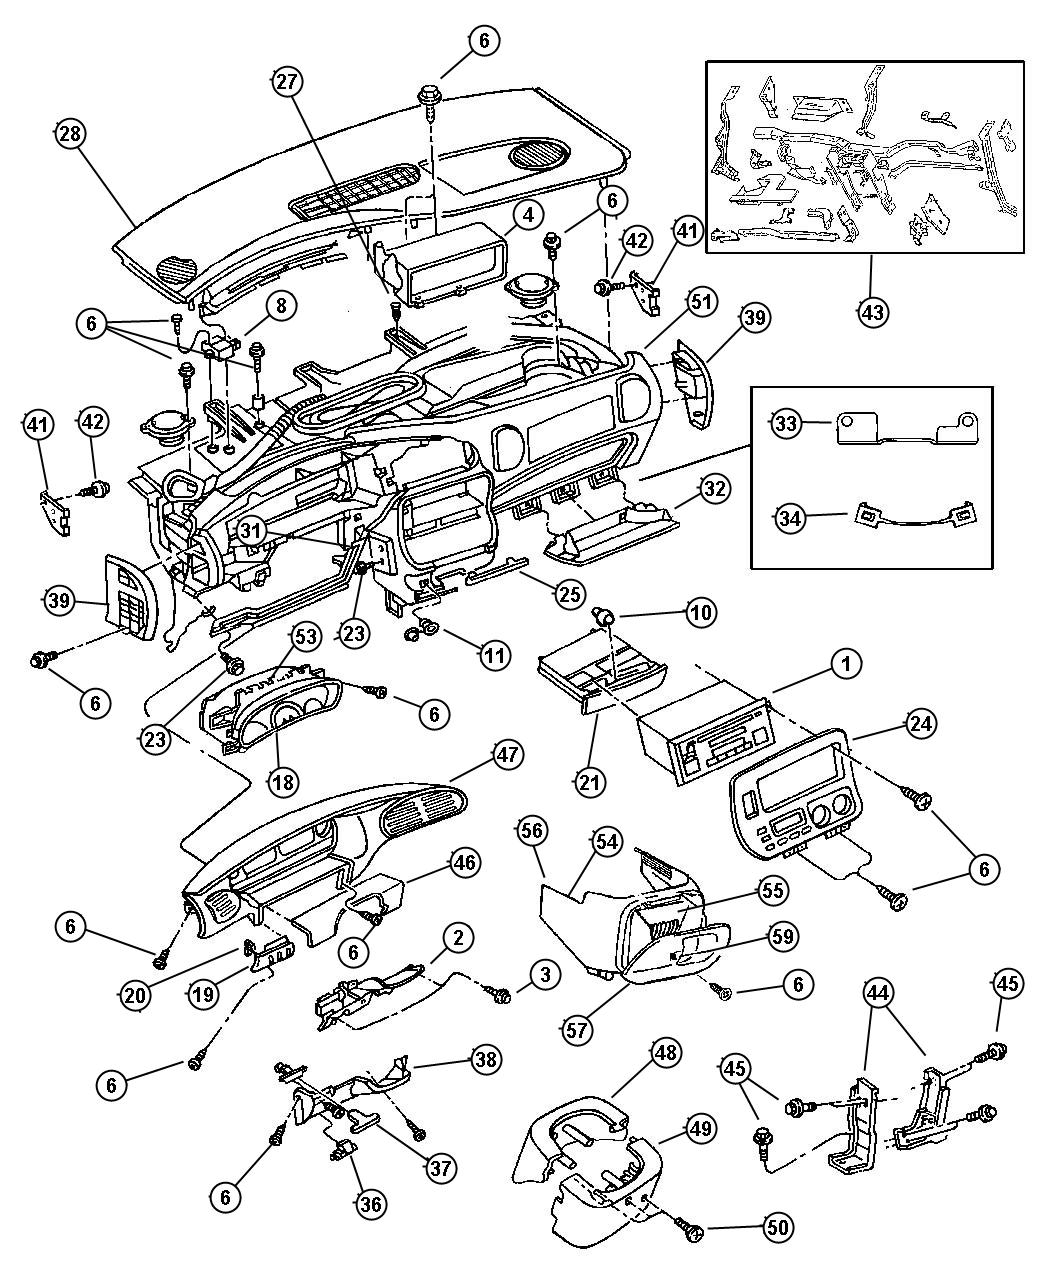 2008 Town And Country Serpentine Belt Diagram